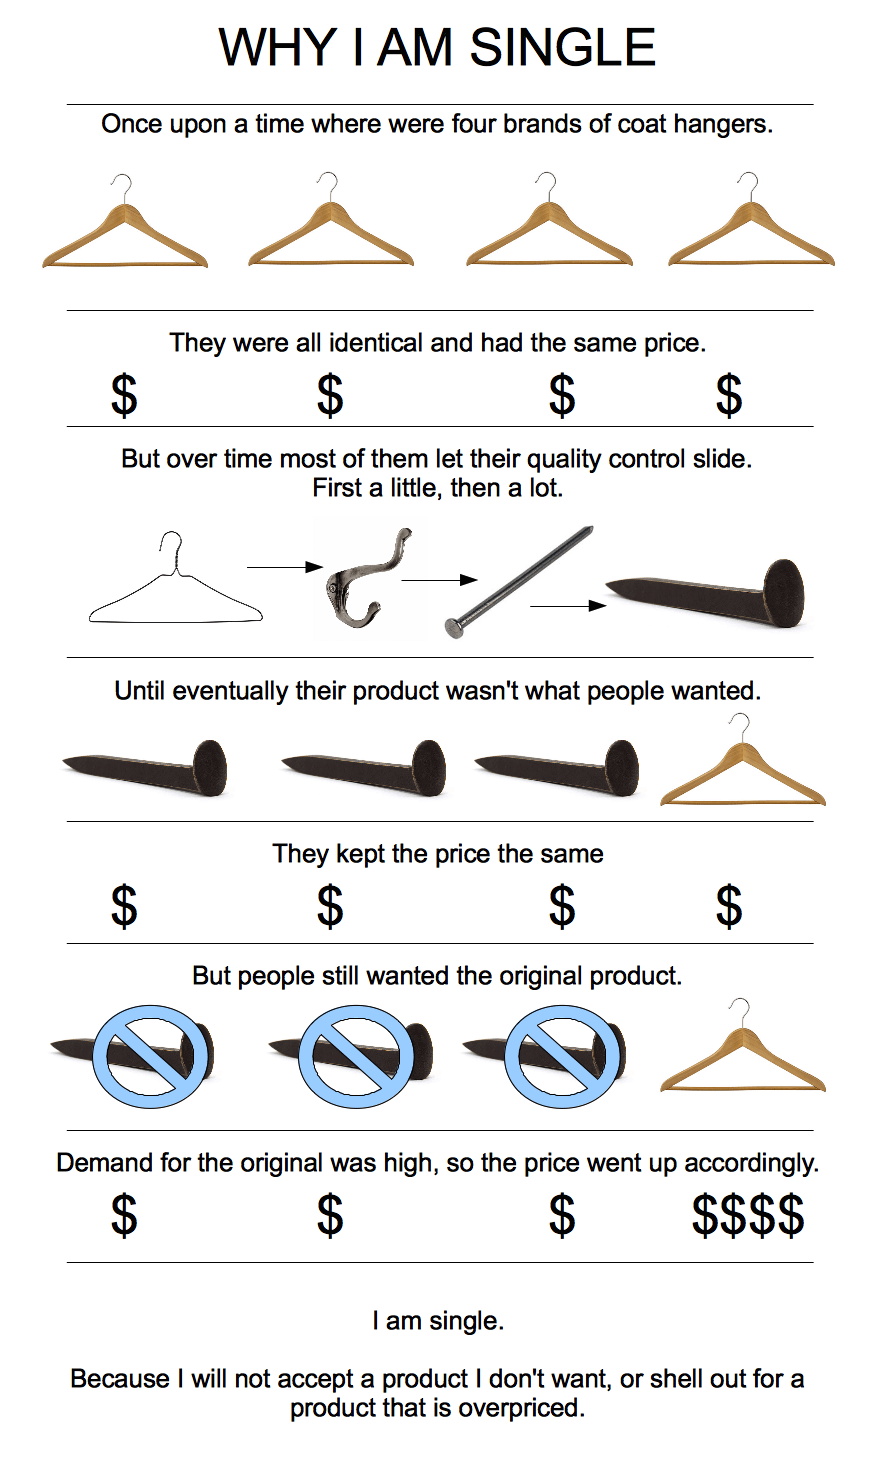 Feminism transforms women from useful, reasonably priced coat hangers to railroad spikes, new MGTOW graphic explains